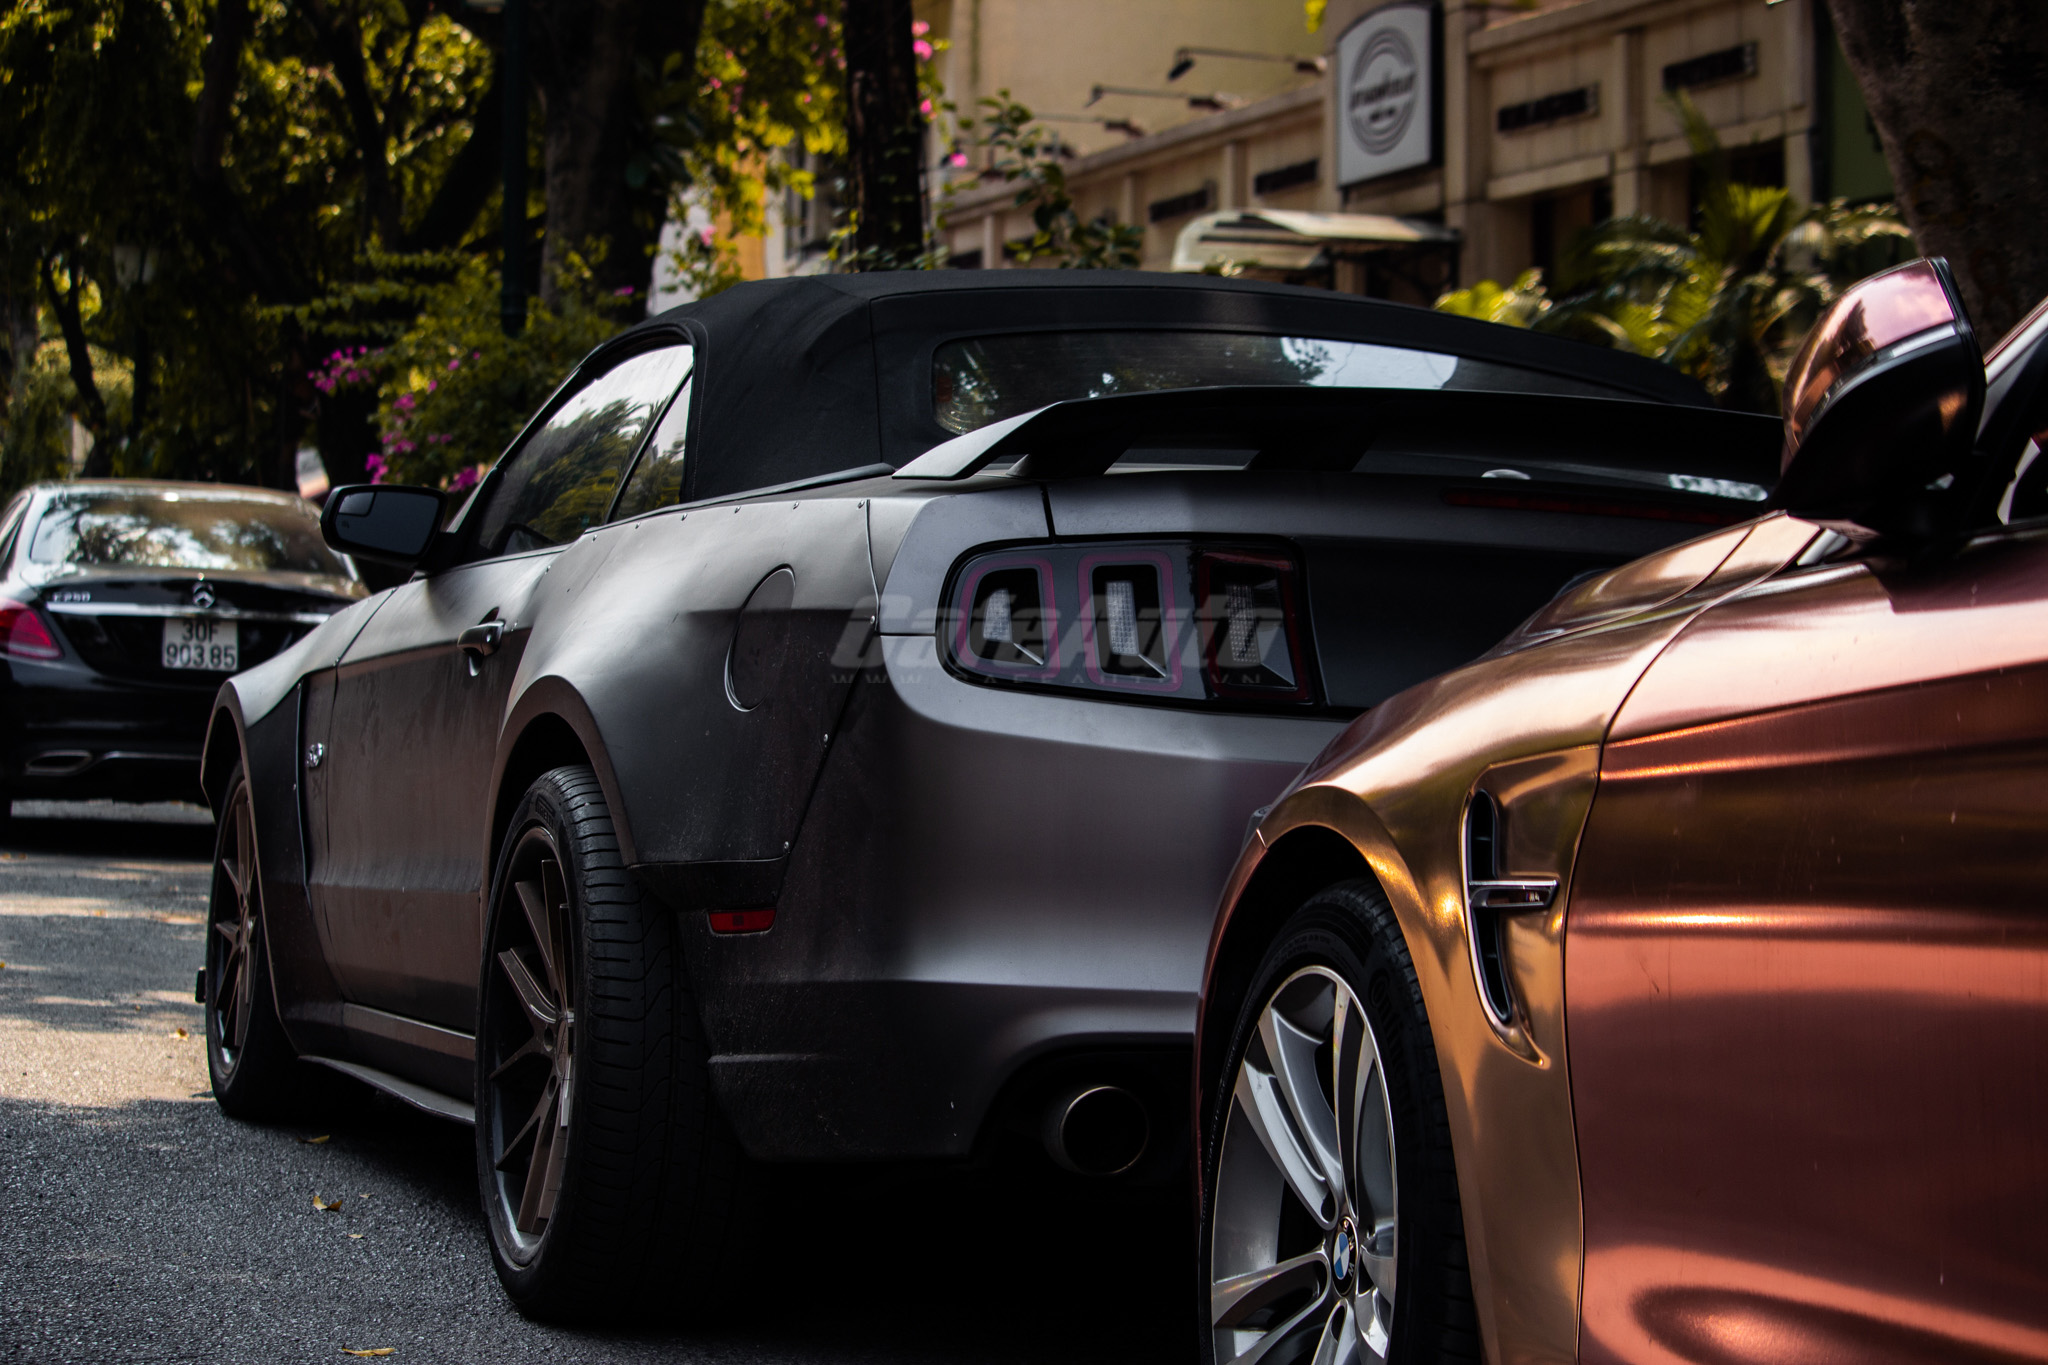 mustangGT-cafeautovn-9